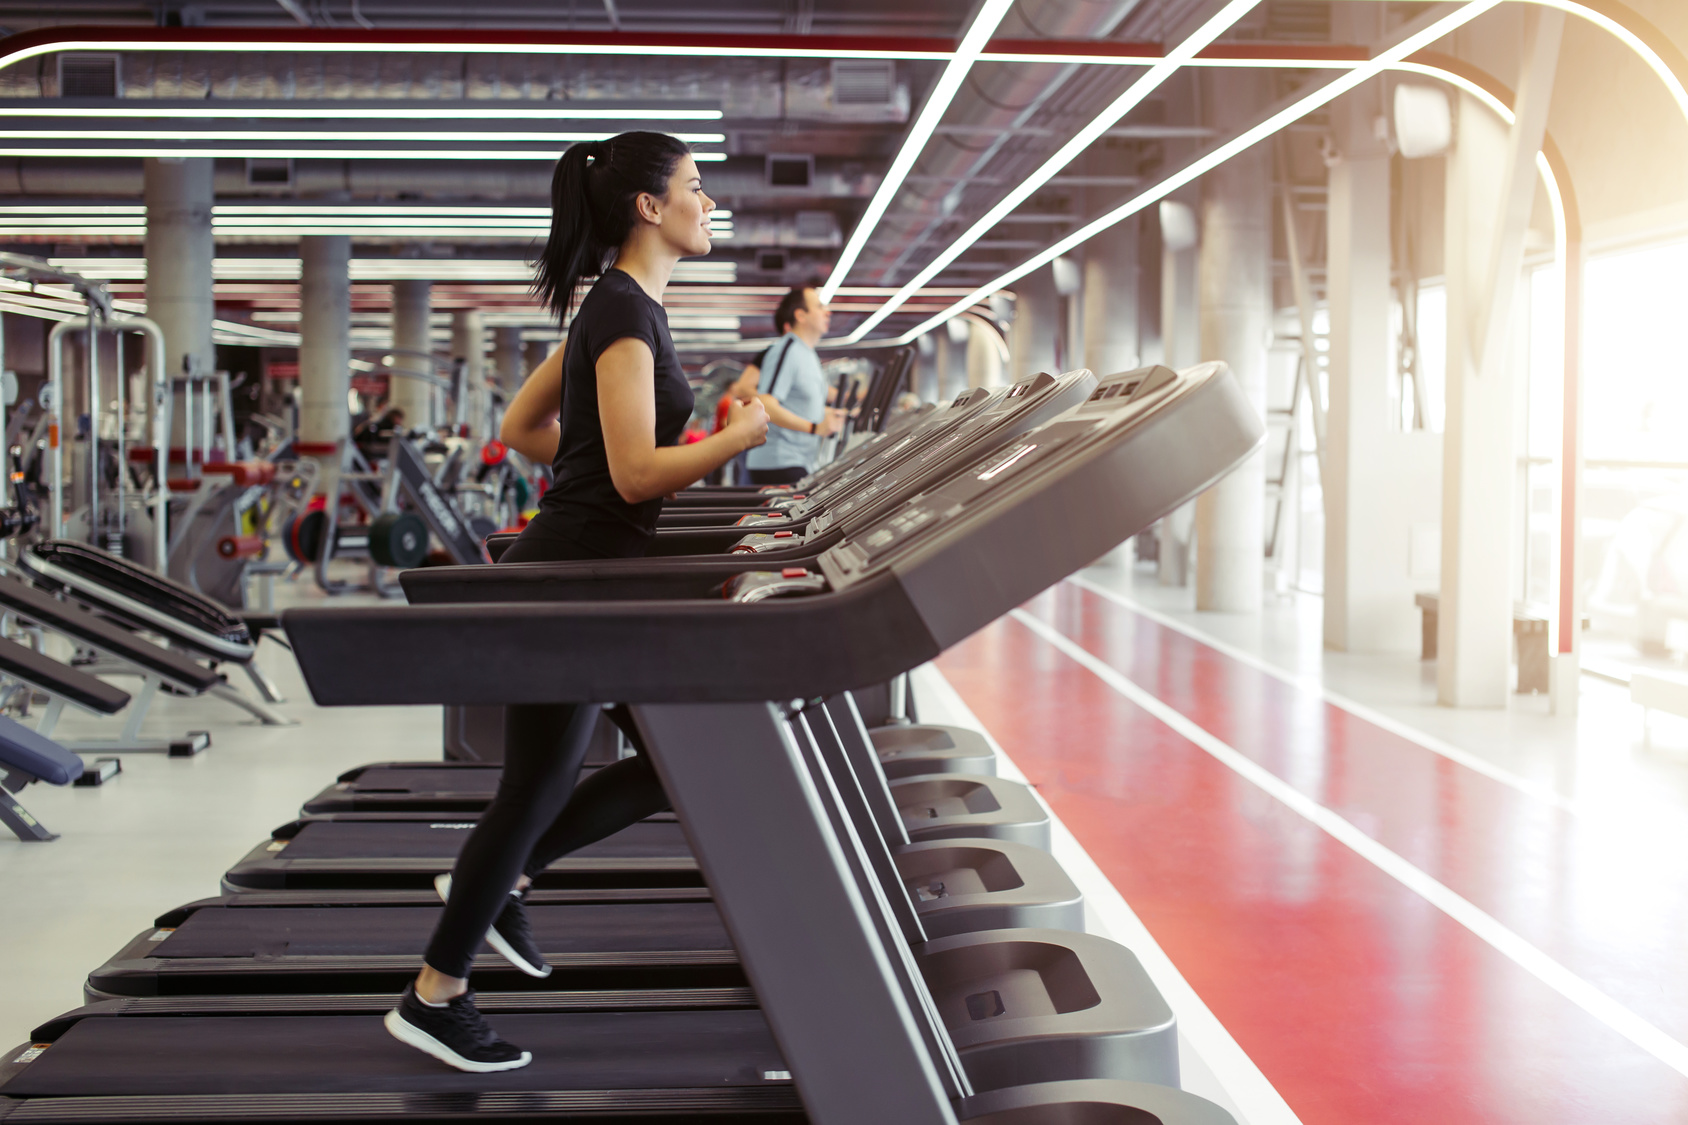 runner trying treadmill for first time